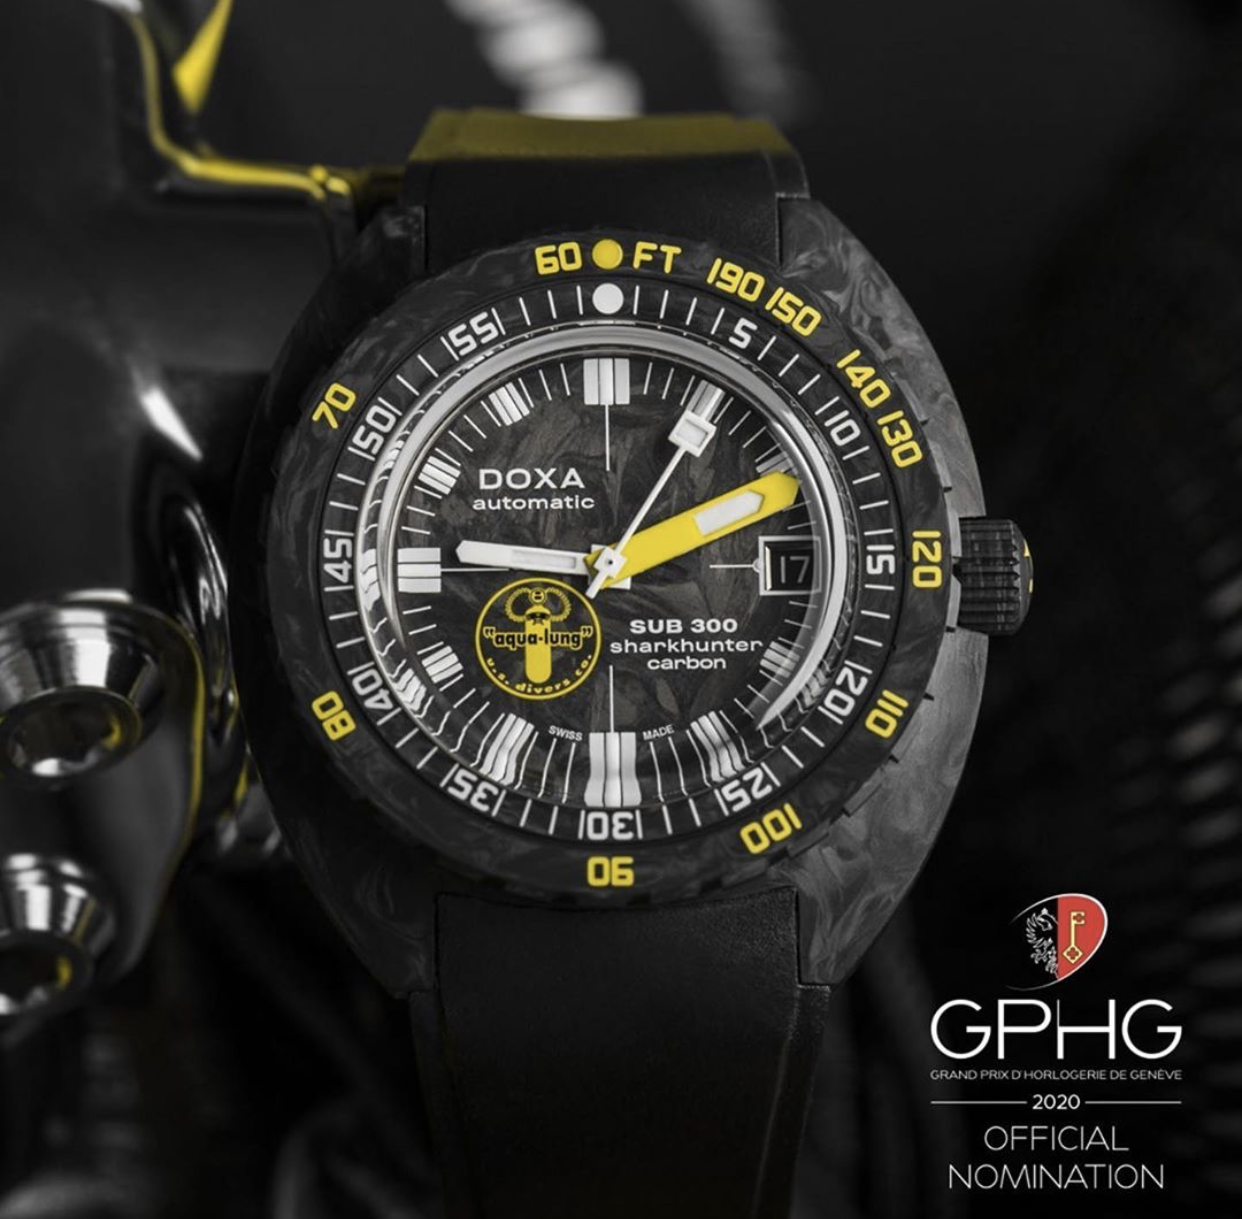 """GPHG 2020: THE DOXA SUB 300 CARBON AQUA LUNG US DIVERS IS OFFICIALLY NOMINATED IN THE """"DIVER'S"""" CATEGORY"""